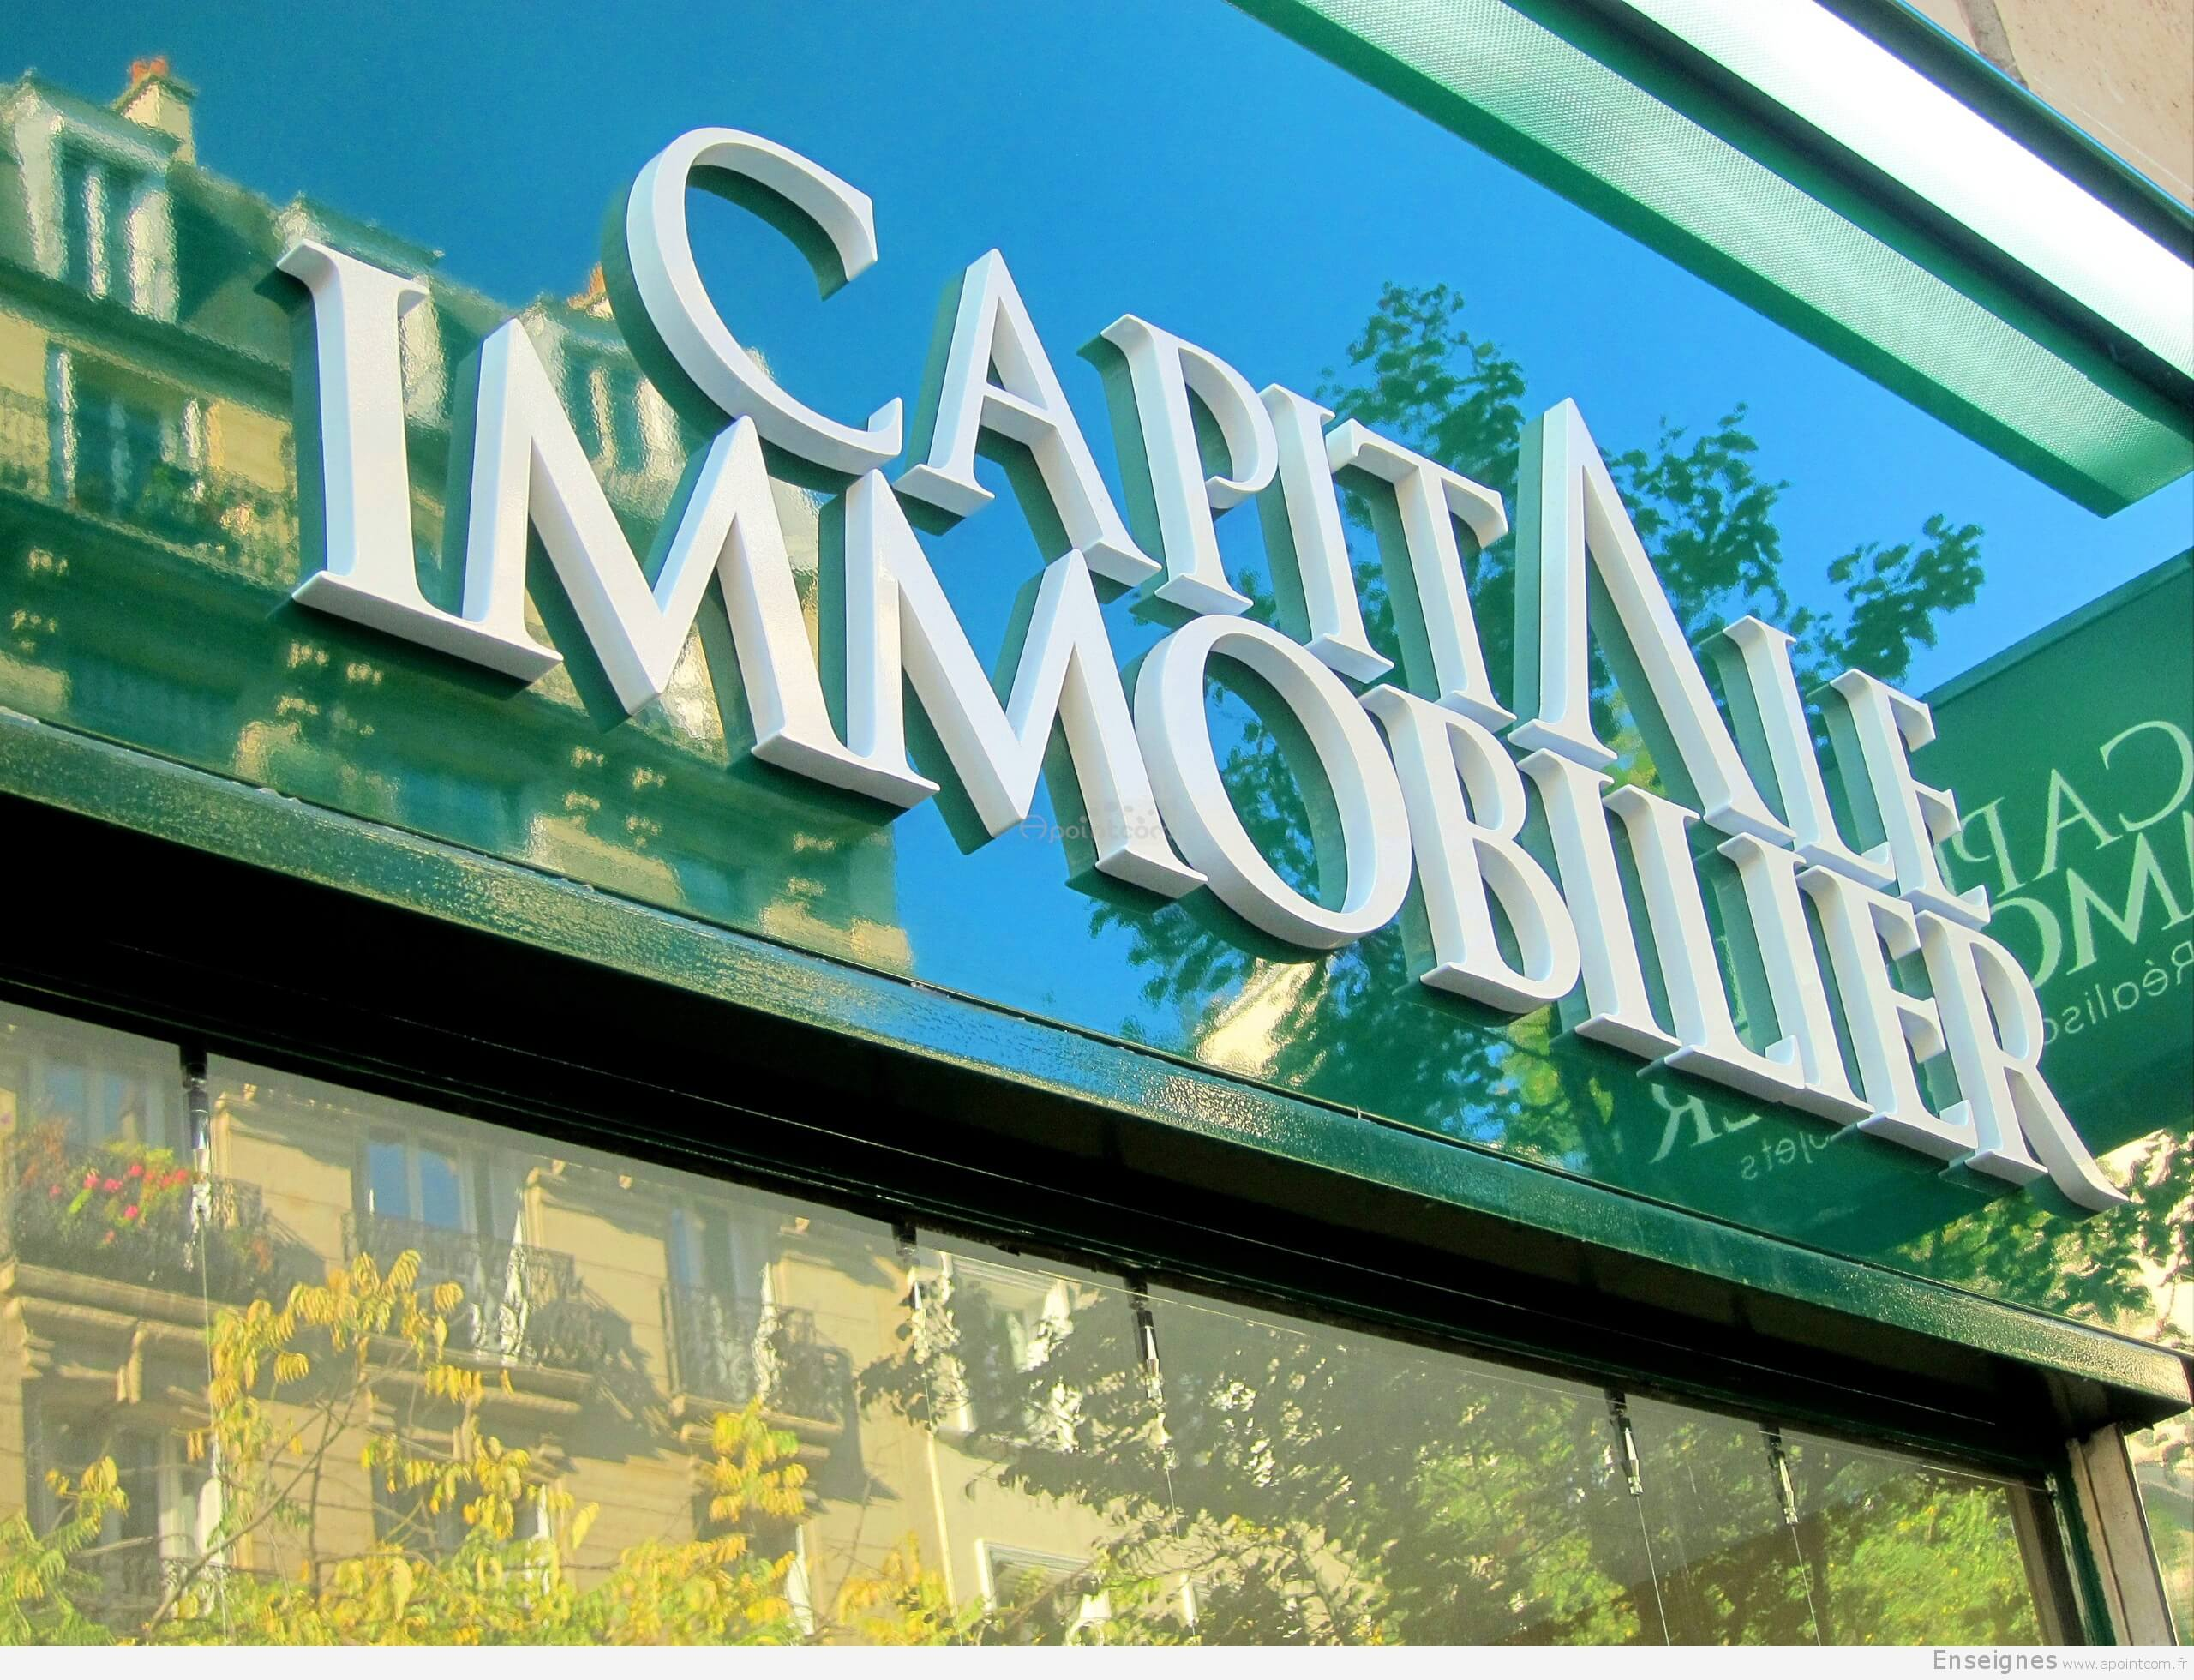 Enseigne agence immobili re paris capital immobilier for Agence immobiliere i